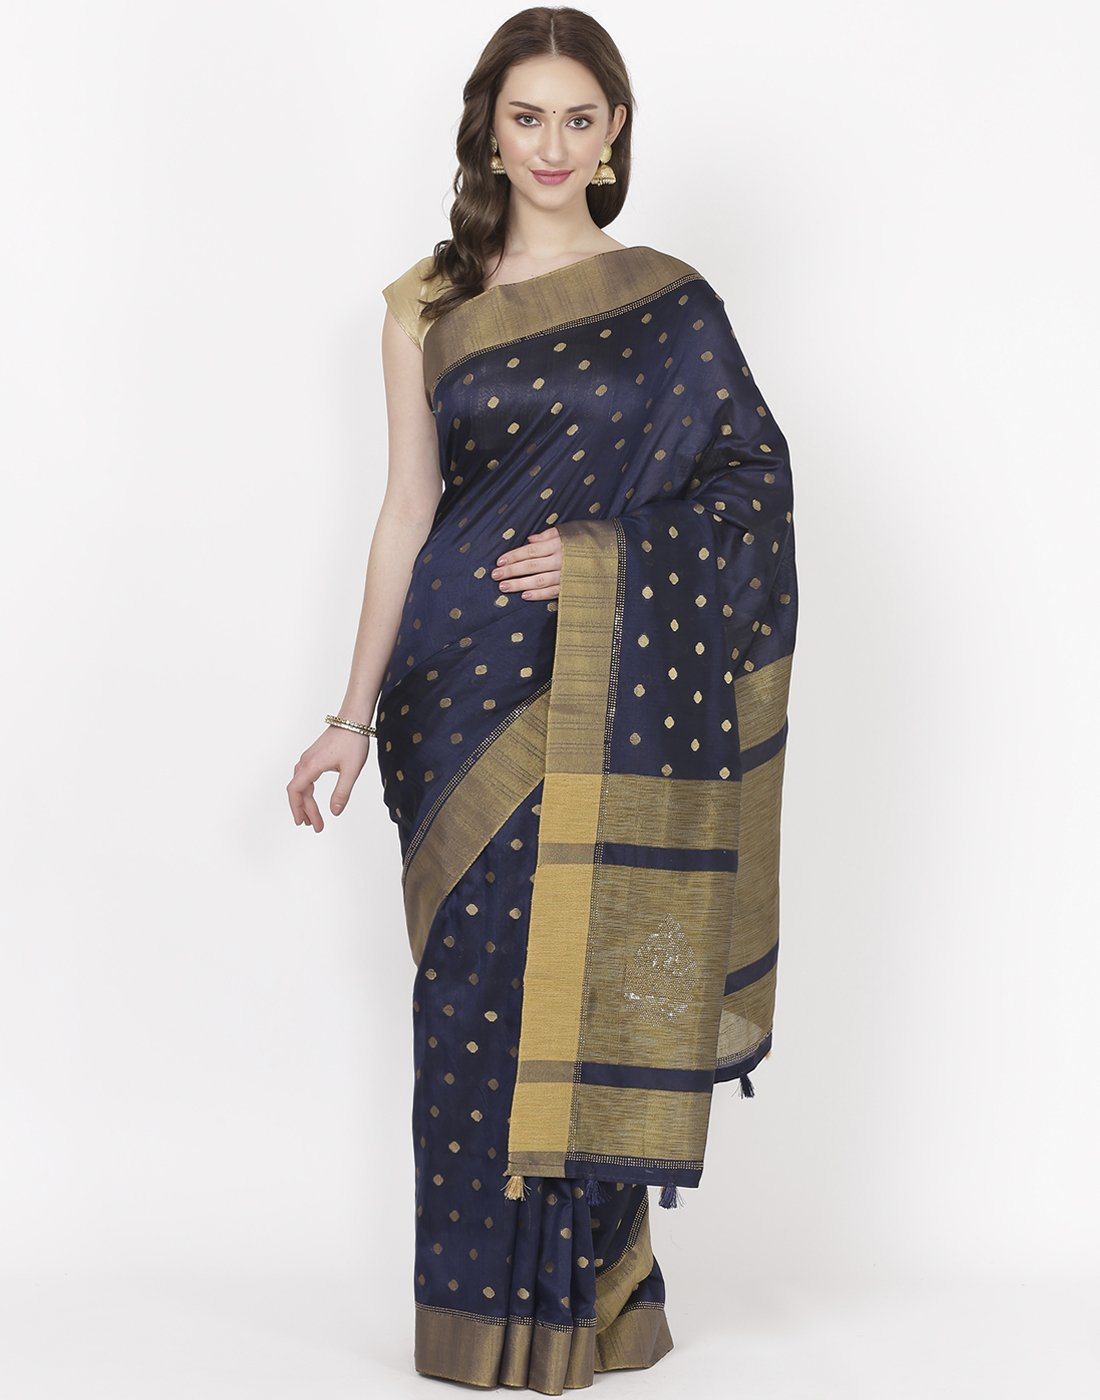 MBZ Meena Bazaar-Navy Blue Art Tussar Saree